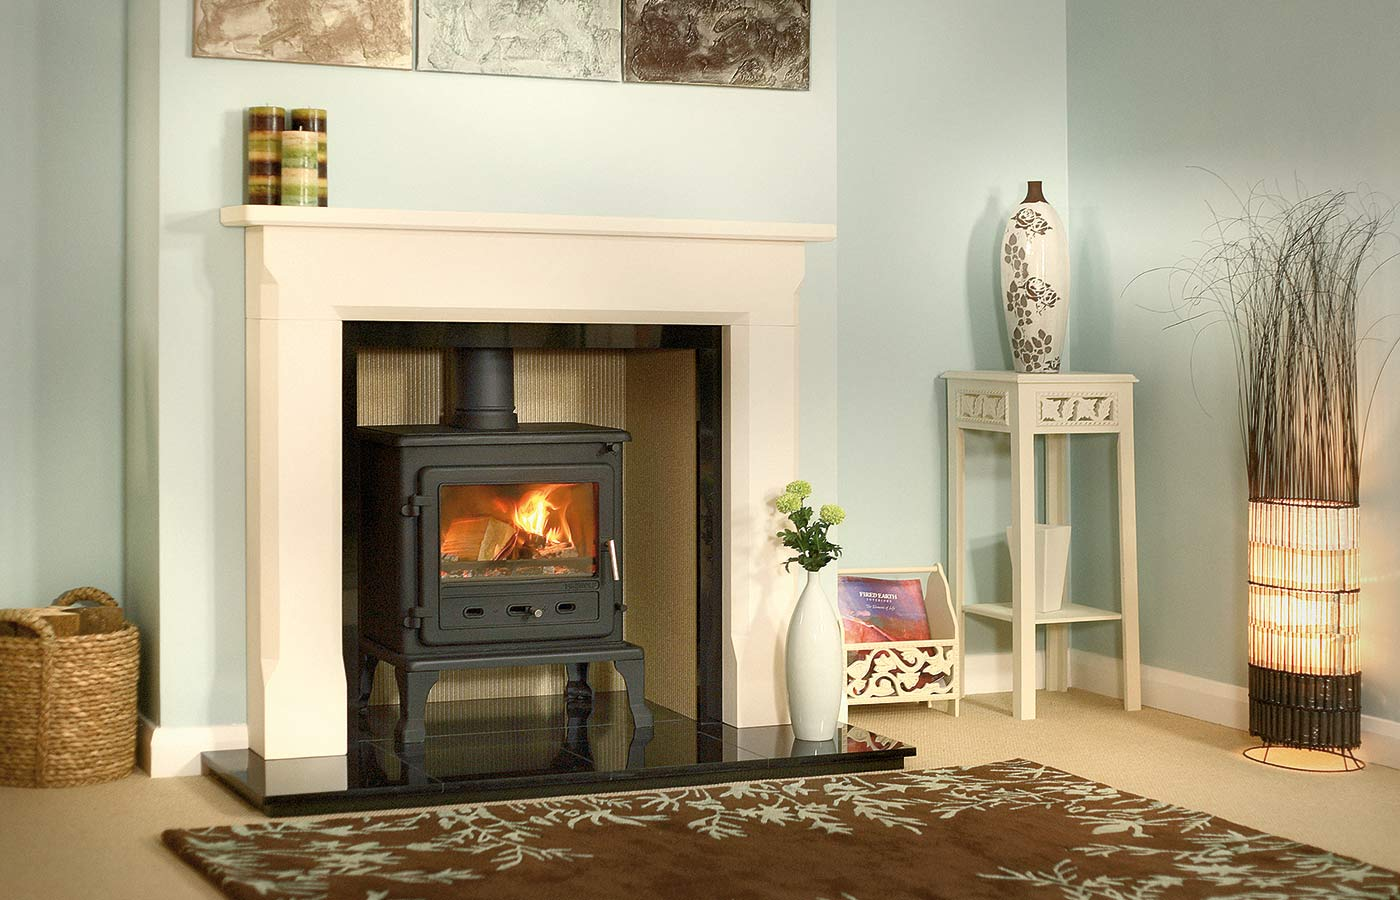 "Firefox 8.1 Multi-Fuel Stove with 54"" Sienna Mantel, Reeded Fireboard Chamber, Granite Slip Set, 54"" Slabbed Granite Hearth and Slabbed Granite Back Hearth"